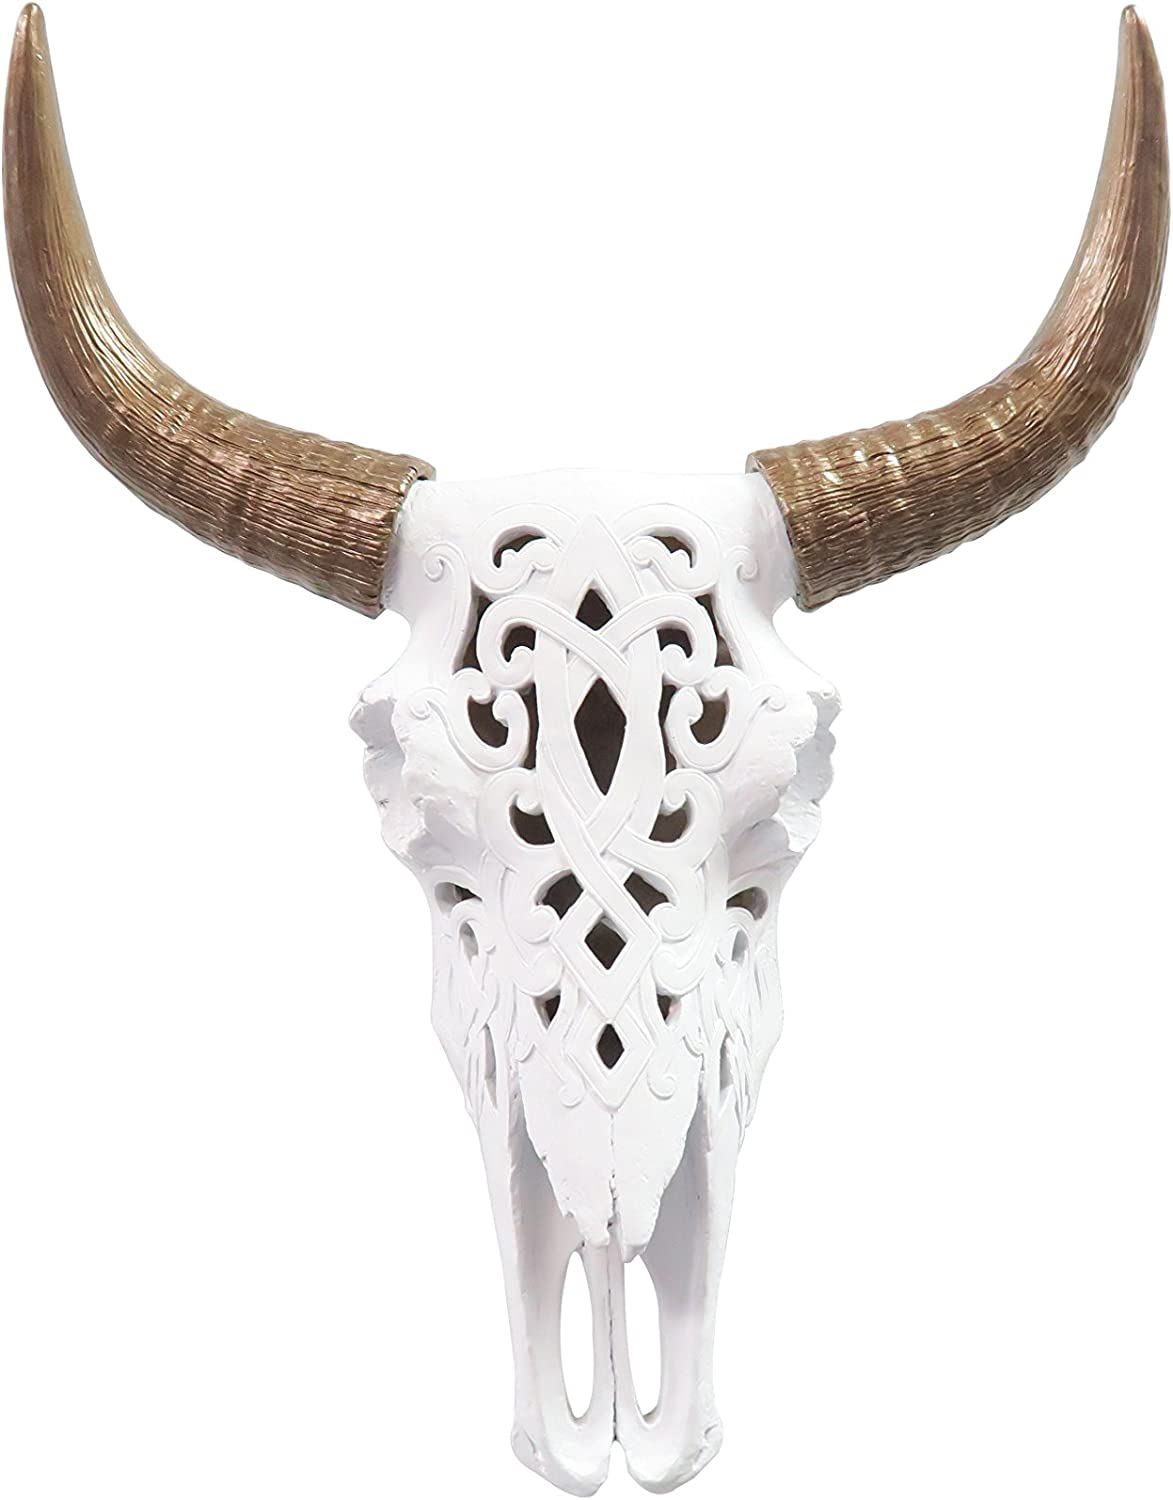 Near and Deer Faux Decorative Carved Cow (Bison) Skull Wall Mount, White/Bronze